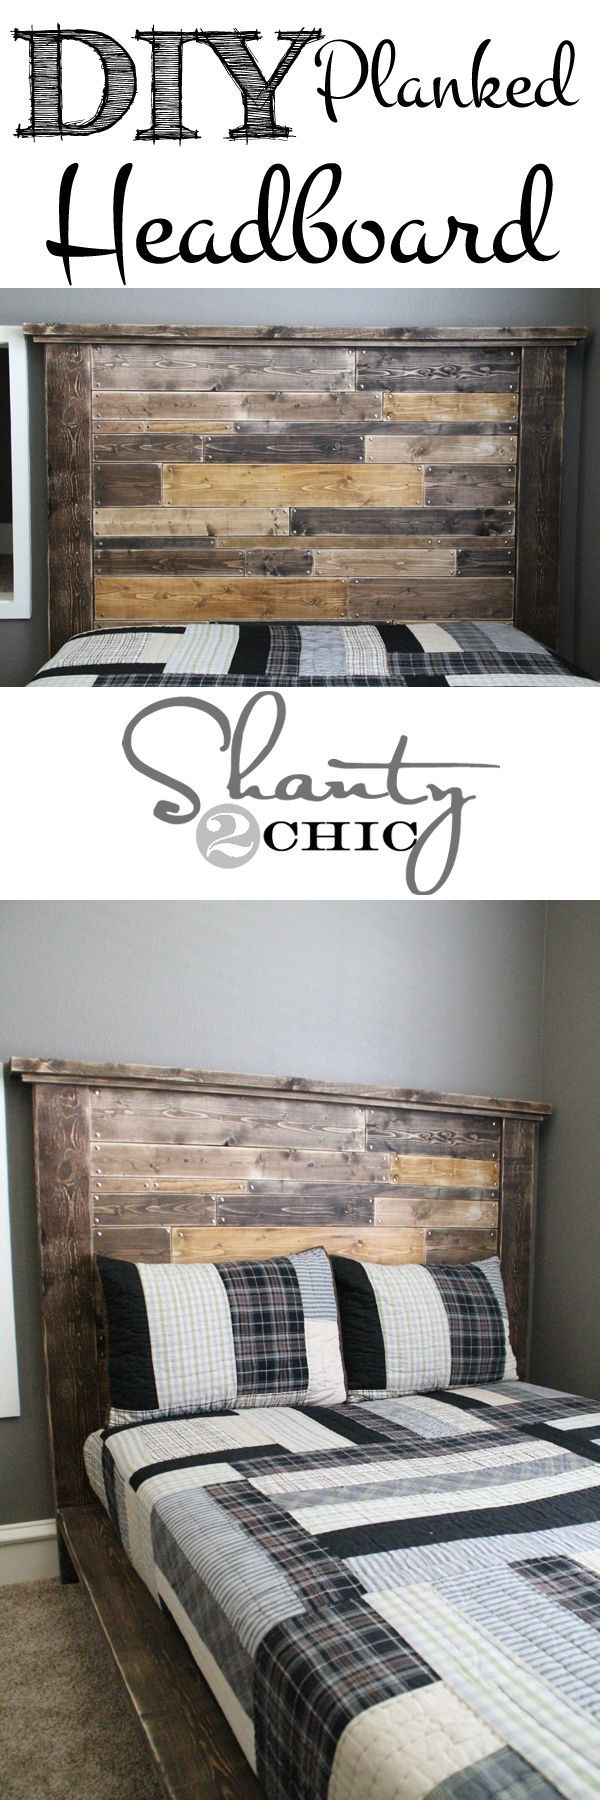 DIY Planked Headboard! This is a super easy and inexpensive headboard that ANYONE can build!: